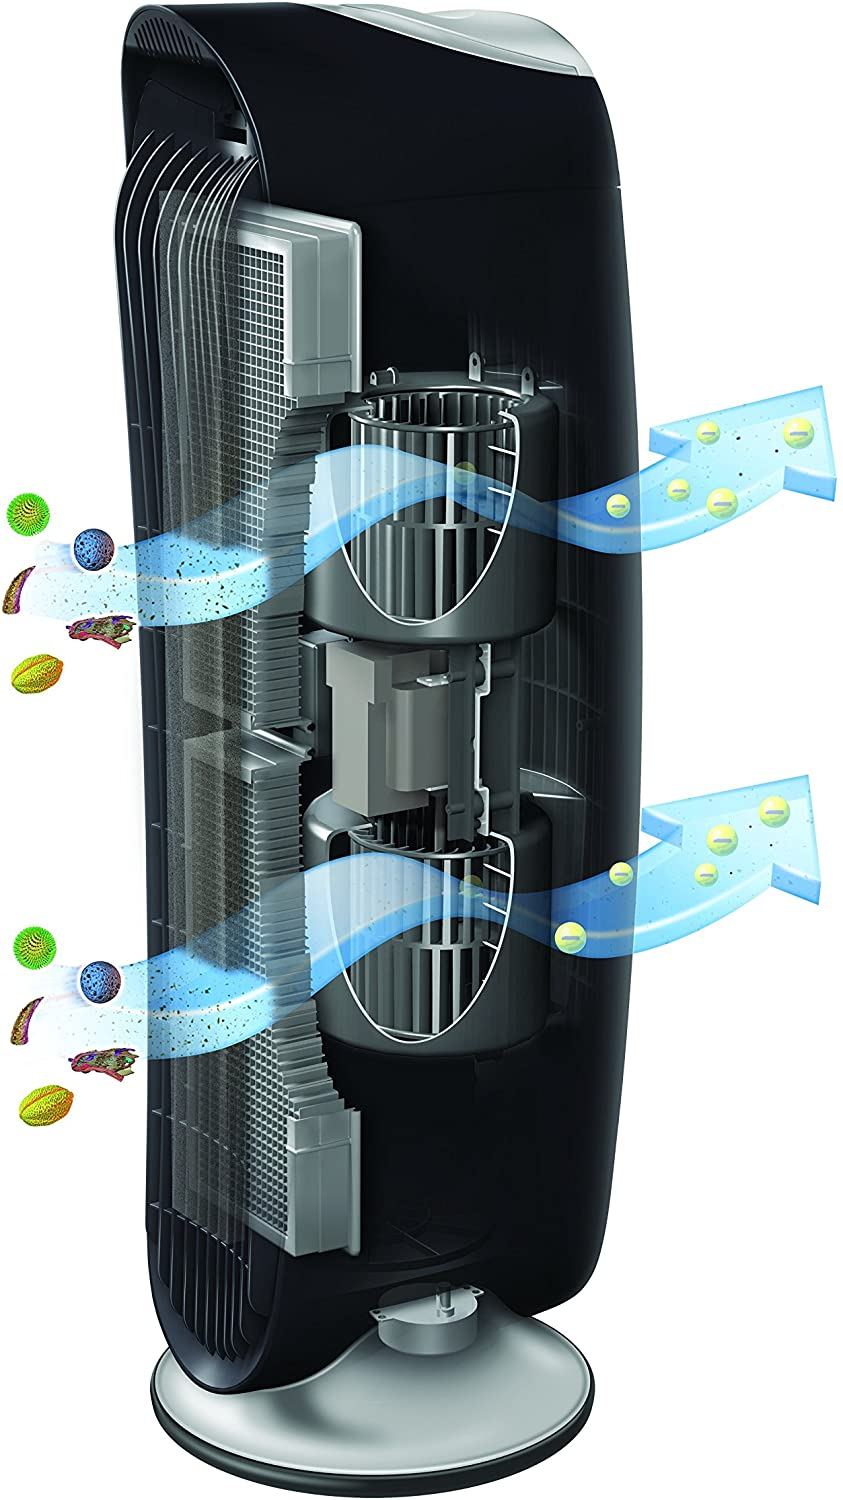 HFD-120-Q QuietClean Oscillating Air Purifier with Permanent Washable Filters